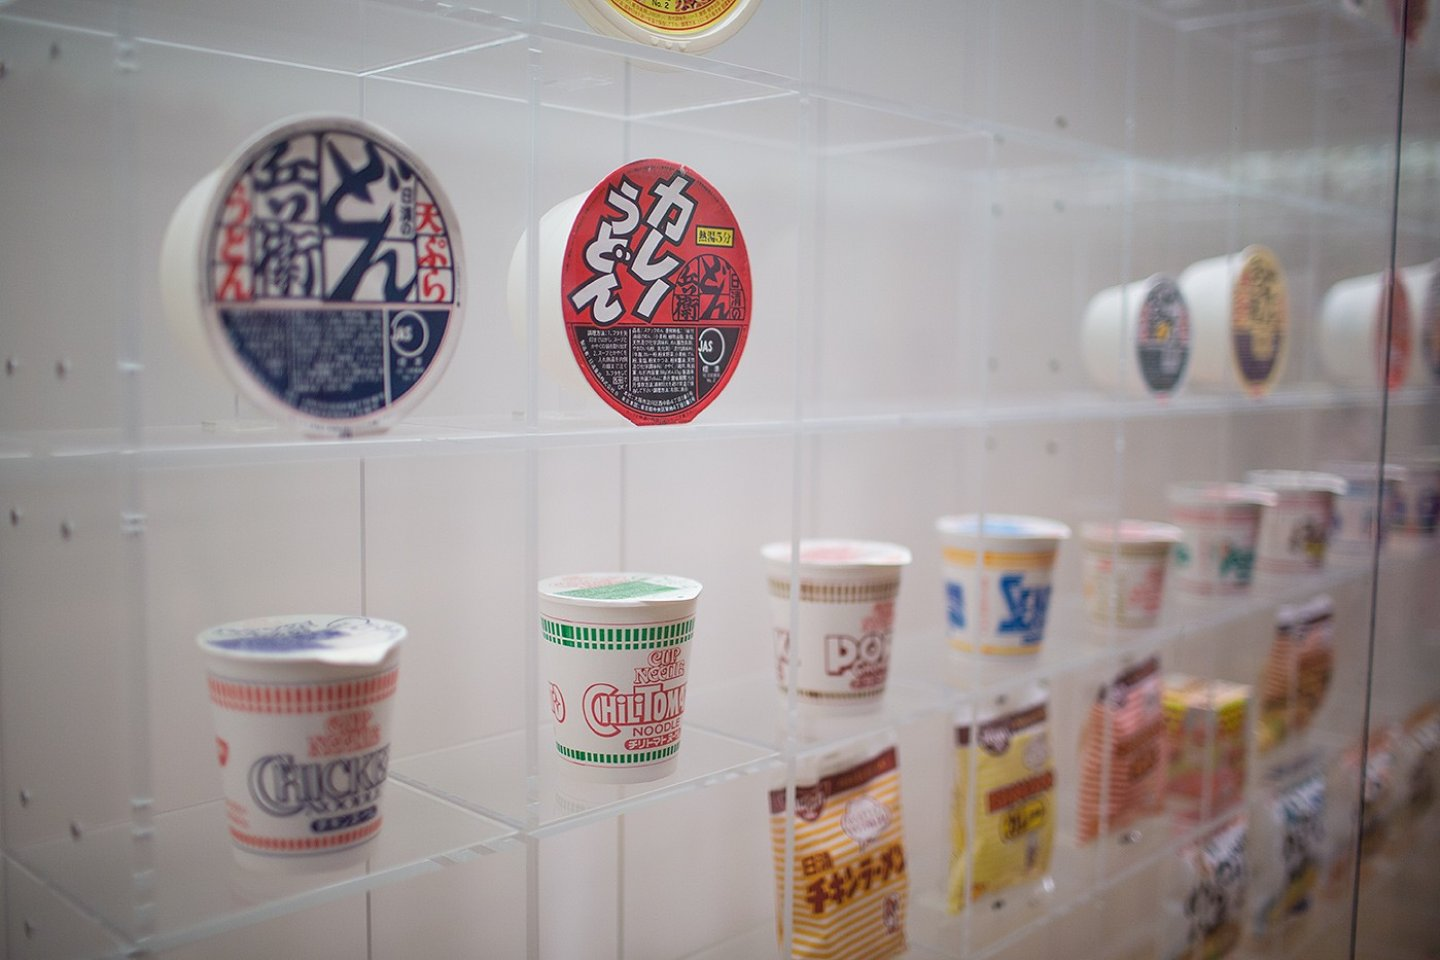 Just some of the many instant noodles on display at Yokohama's Cup Noodles Museum